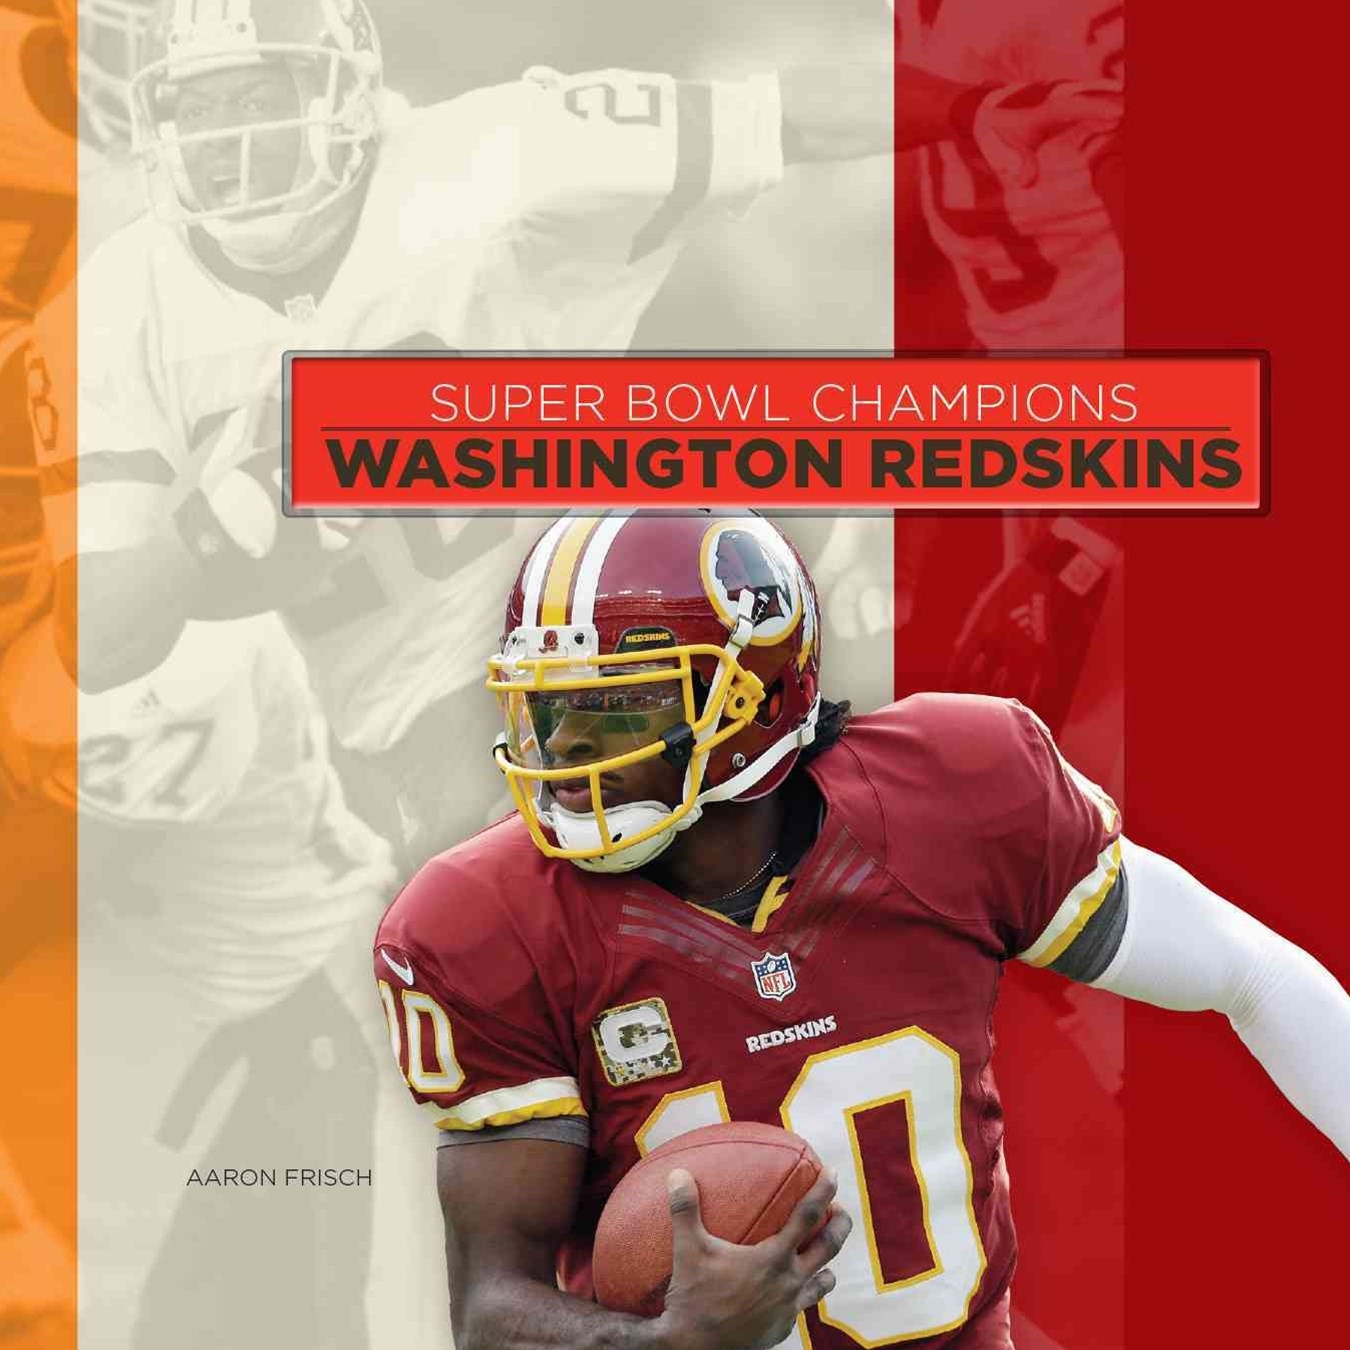 Super Bowl Champions: Washington Redskins